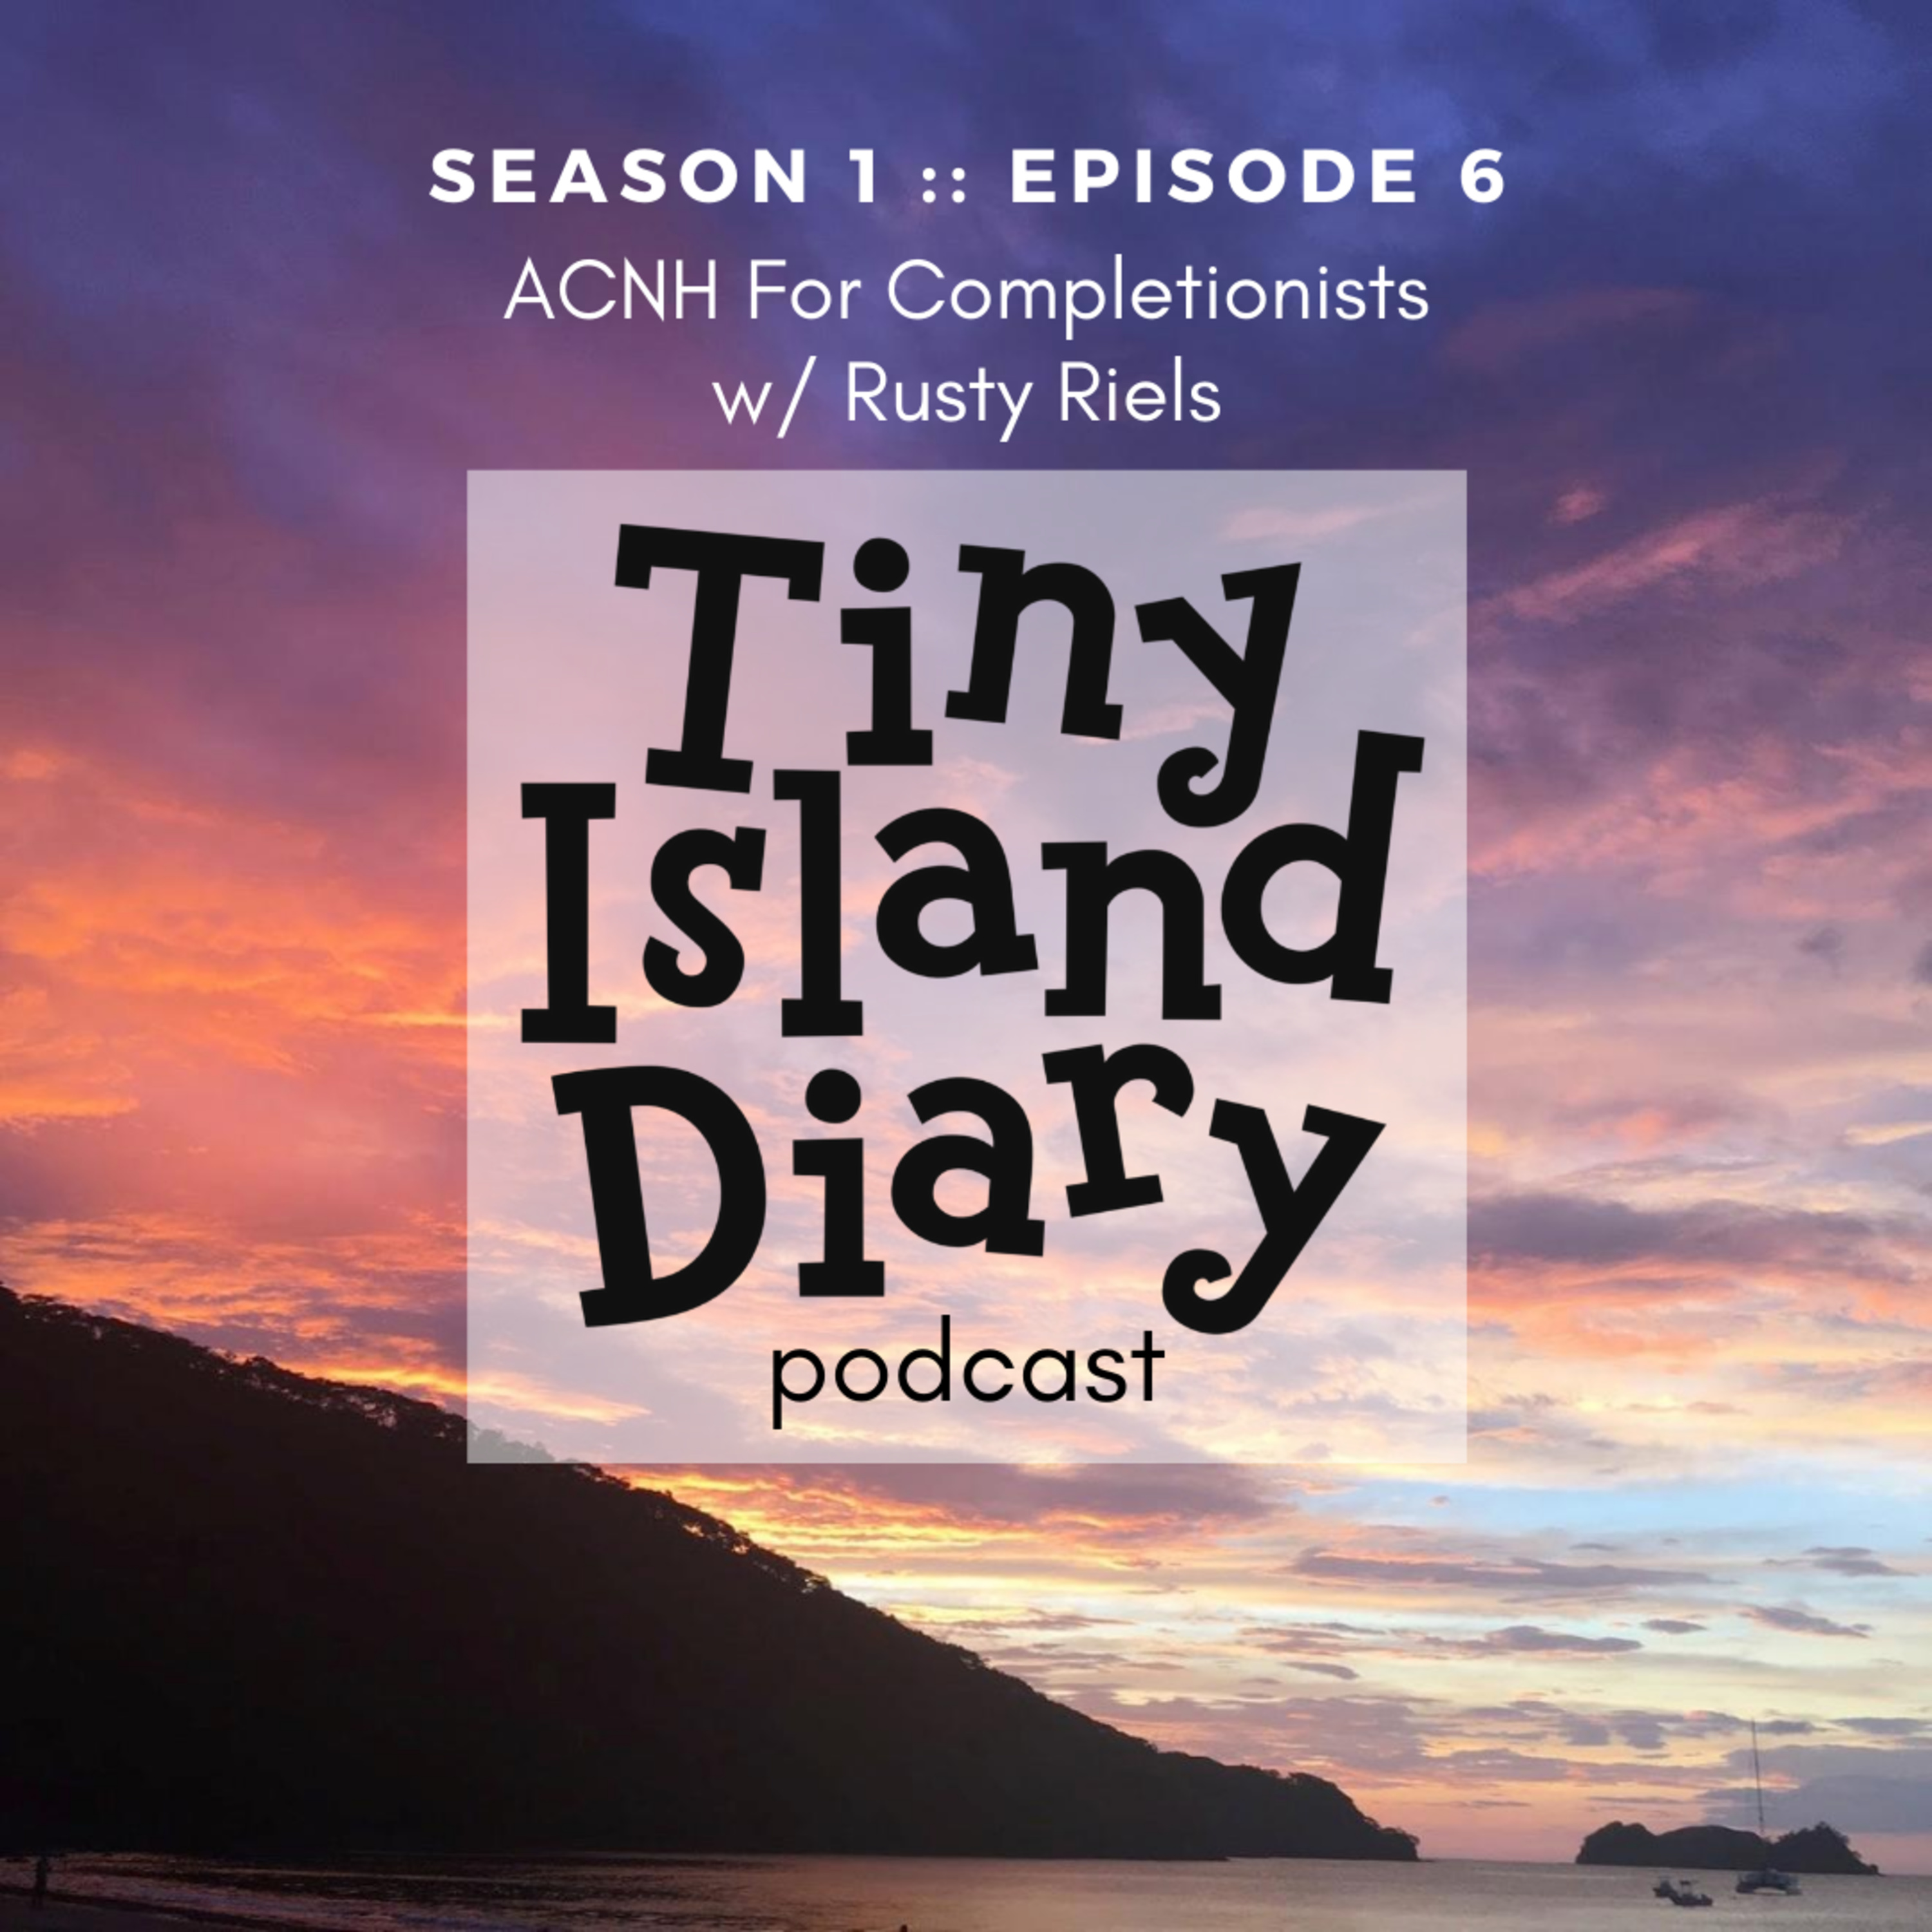 S1E6: #ACNH For Completionists w/ Rusty Riels